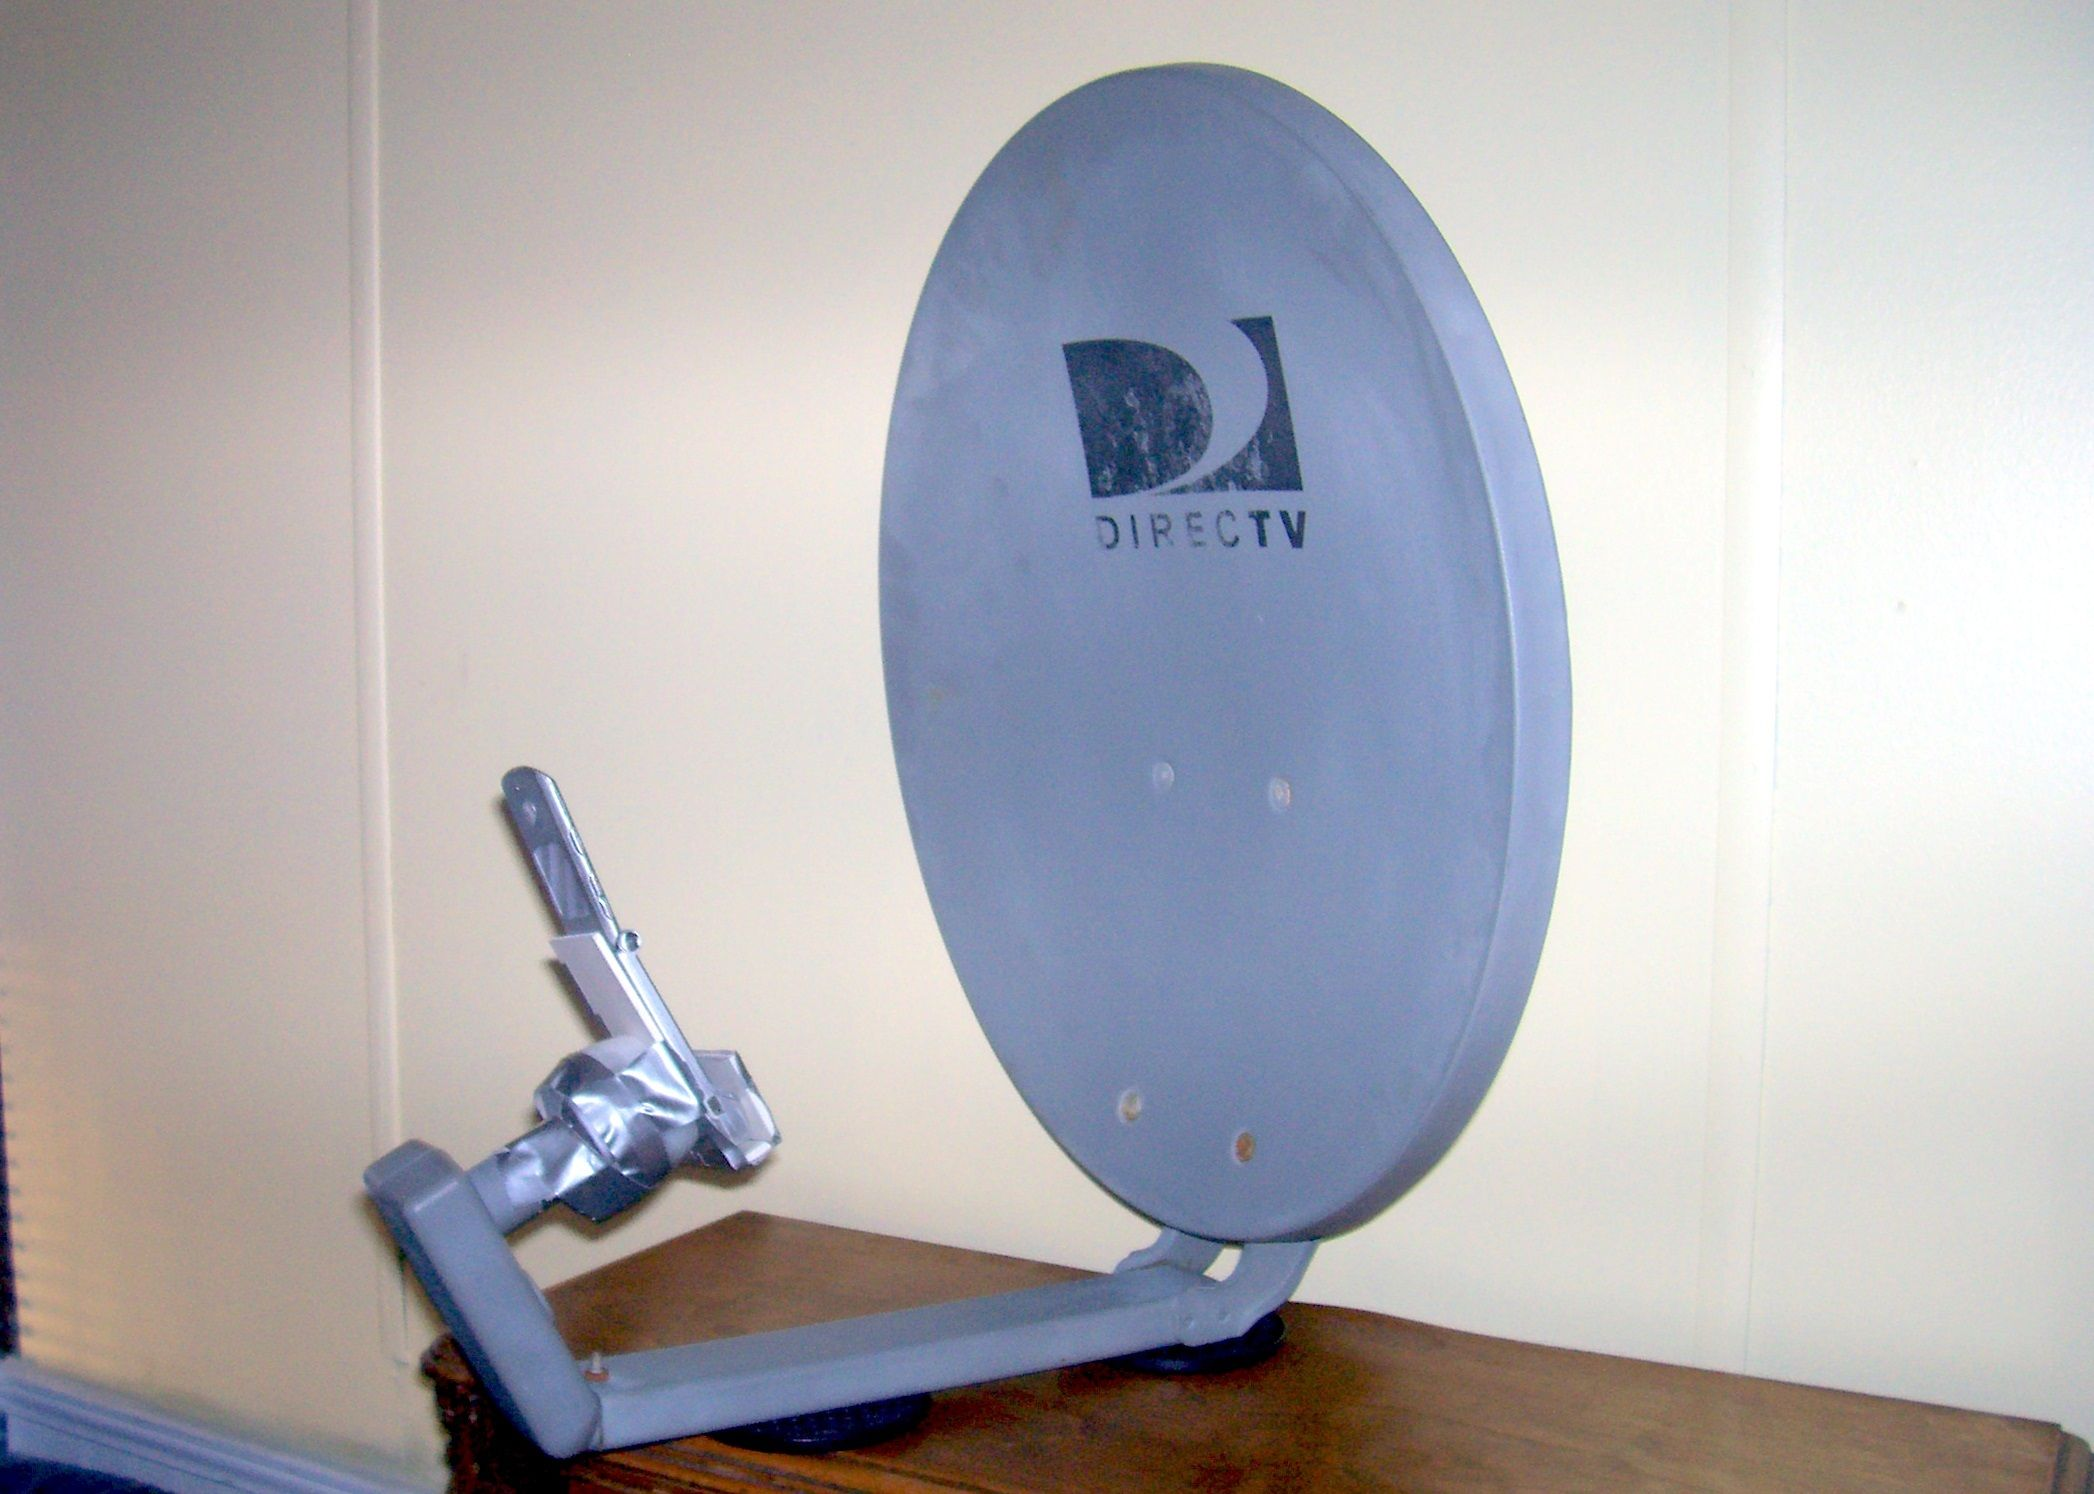 Repurposed Satellite Dish Antenna Captures Wi-Fi and Cell ...